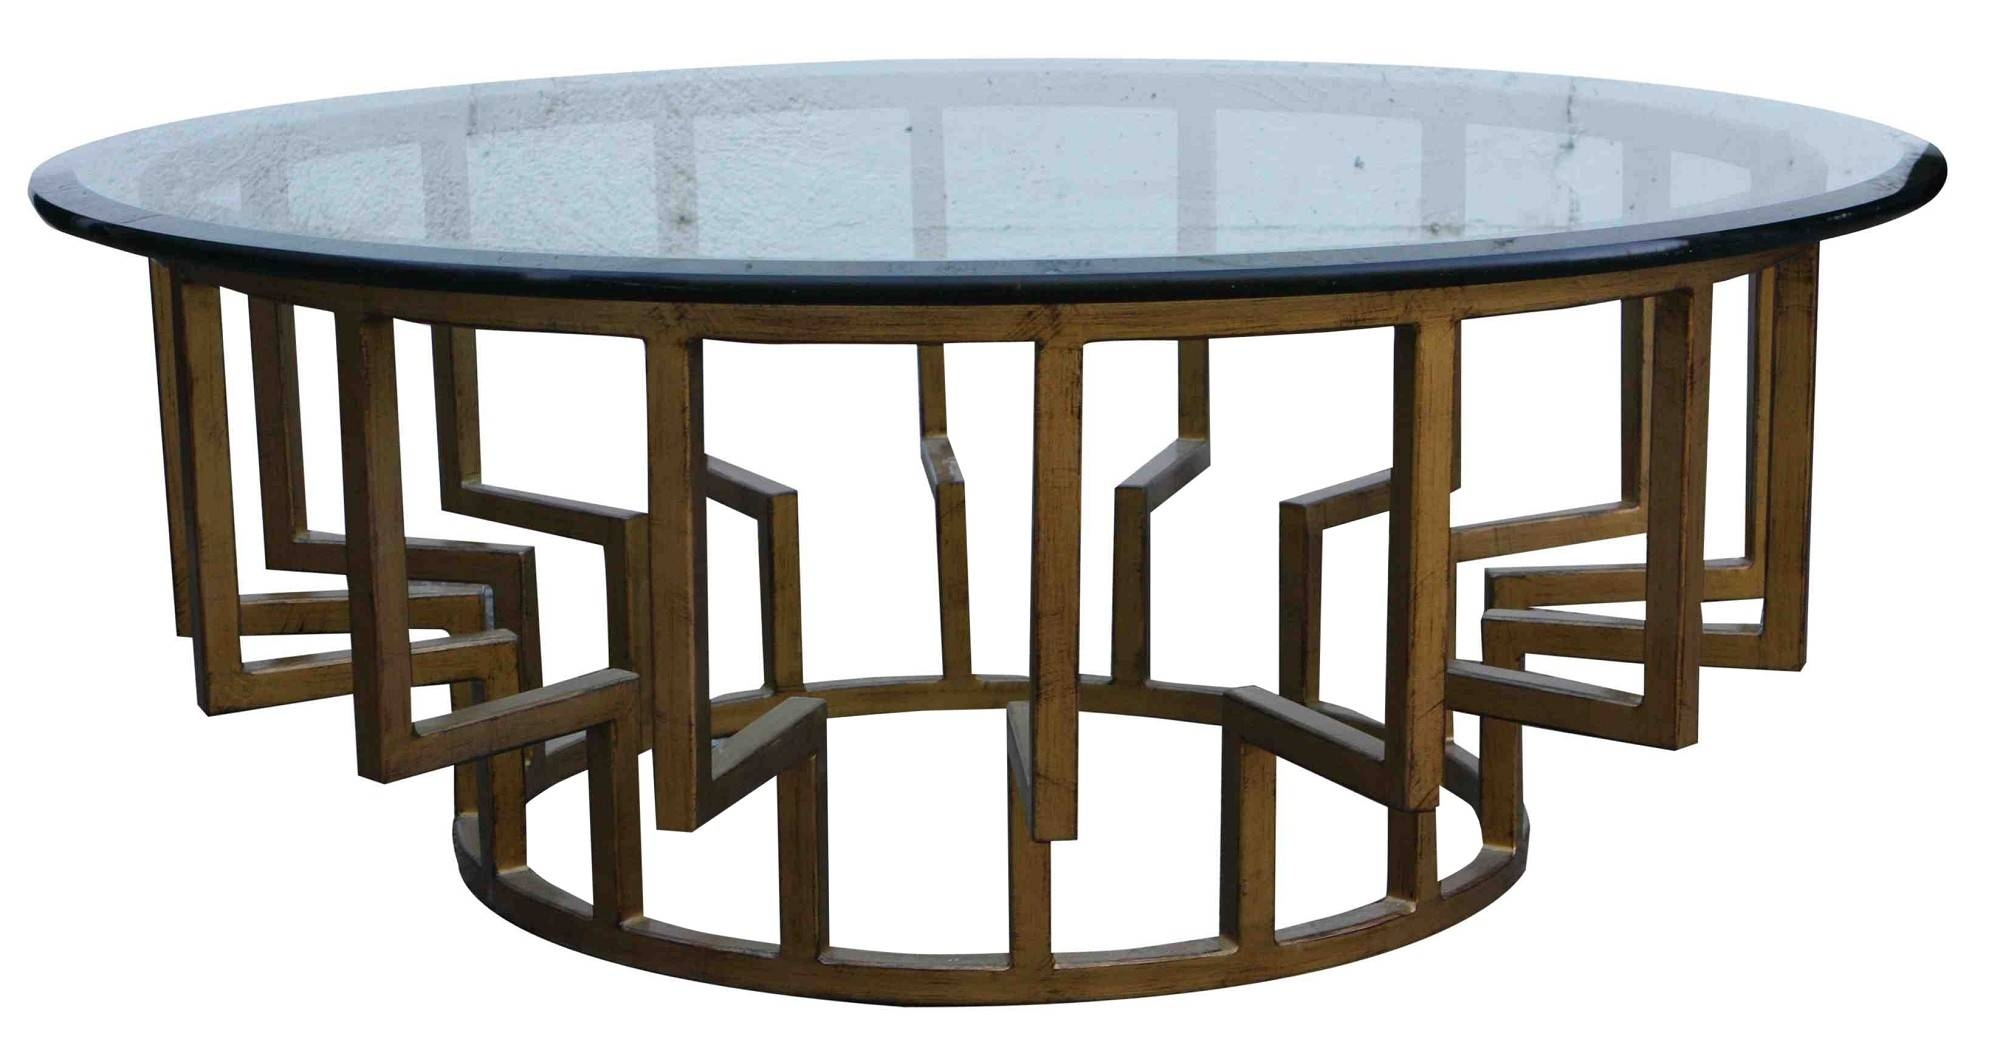 Round Low Coffee Table Base Ideas ~ Idolza with regard to Large Contemporary Coffee Tables (Image 14 of 15)